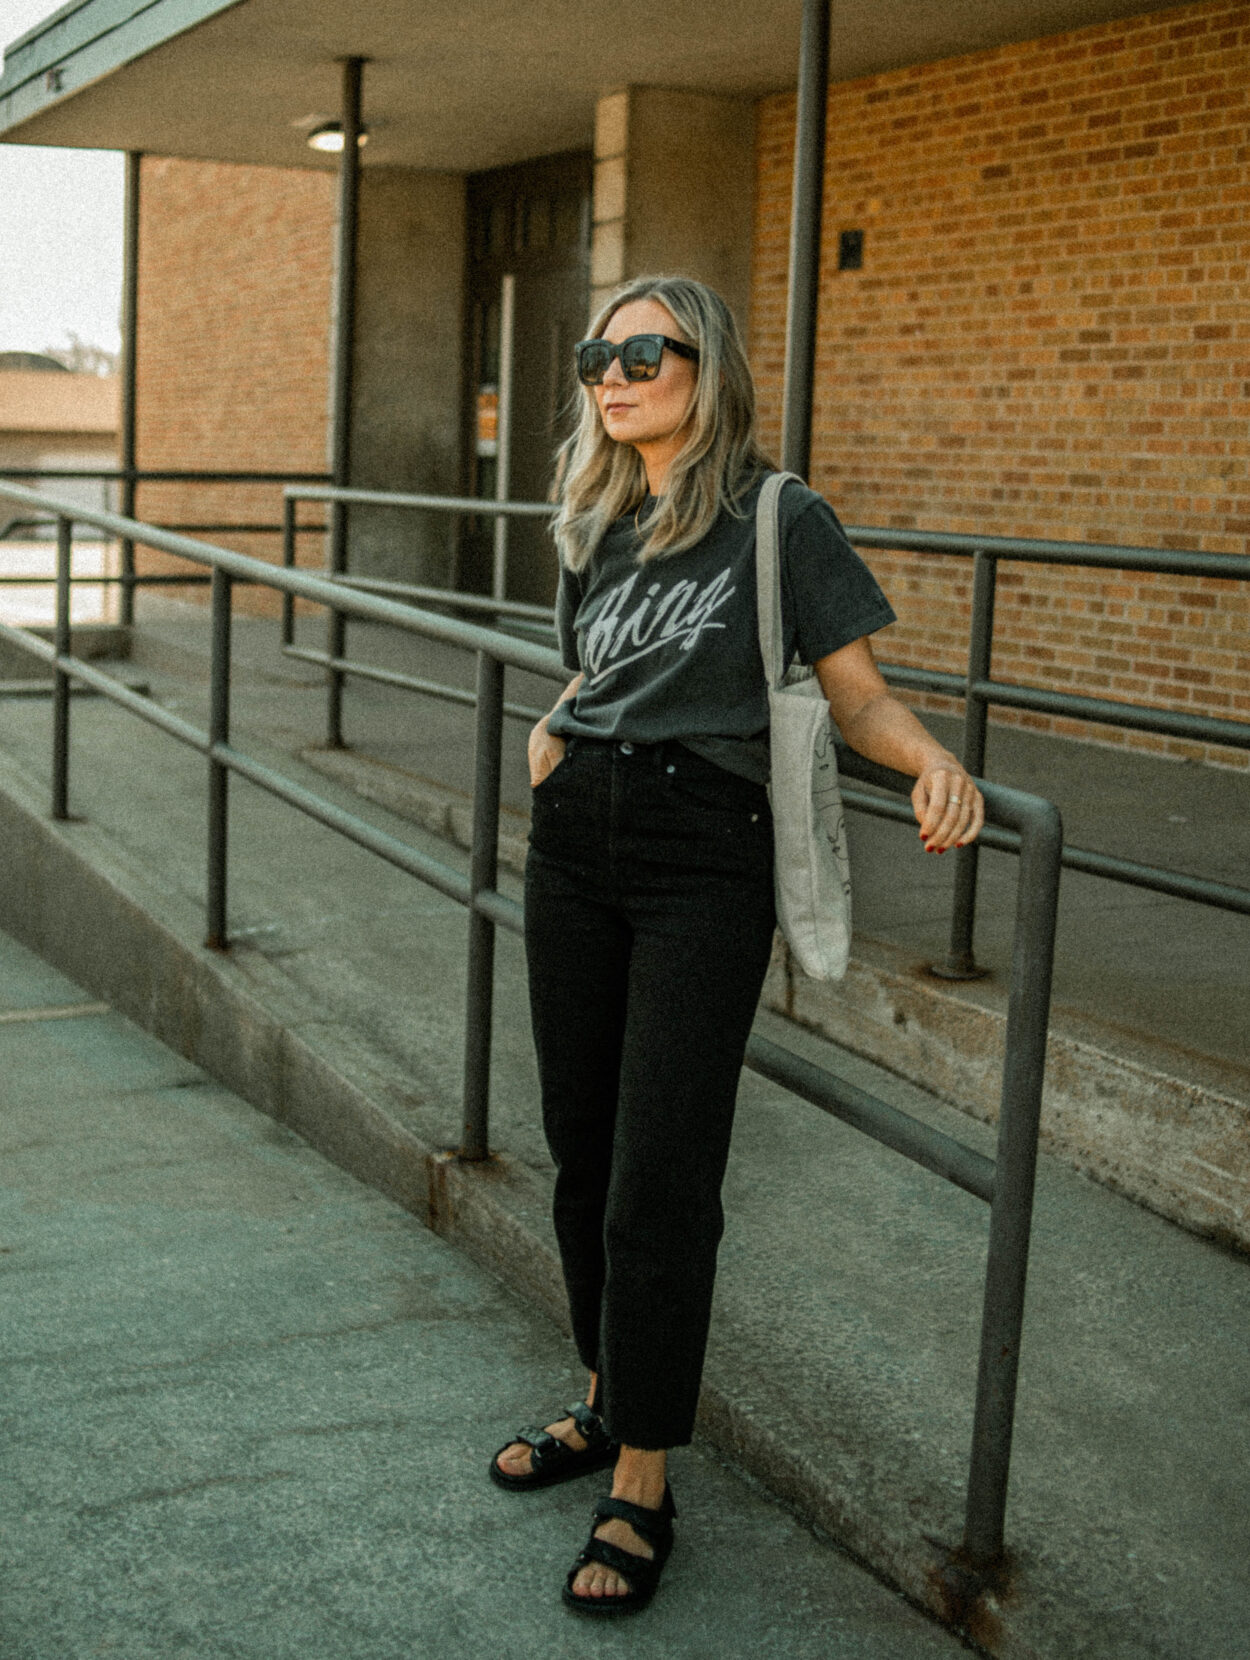 anine bing tee, graphic tee, everlane way high jeans, black high waisted jean, black straight leg jeans, chunky sandals, chanel lookalike sandals